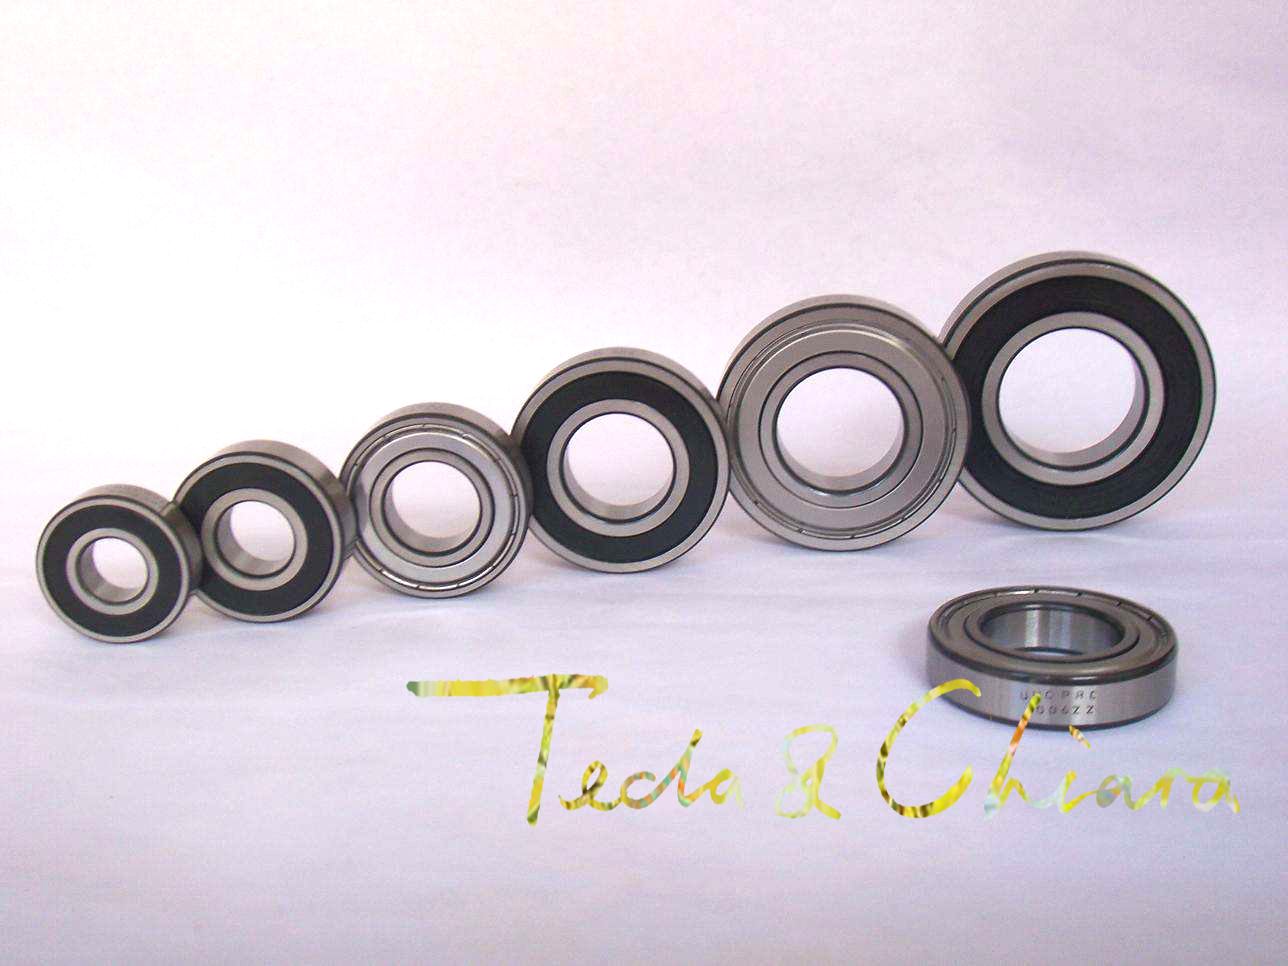 6806 6806ZZ 6806RS 6806-2Z 6806Z 6806-2RS ZZ RS RZ 2RZ Deep Groove Ball Bearings 30 x 42 x 7mm High Quality